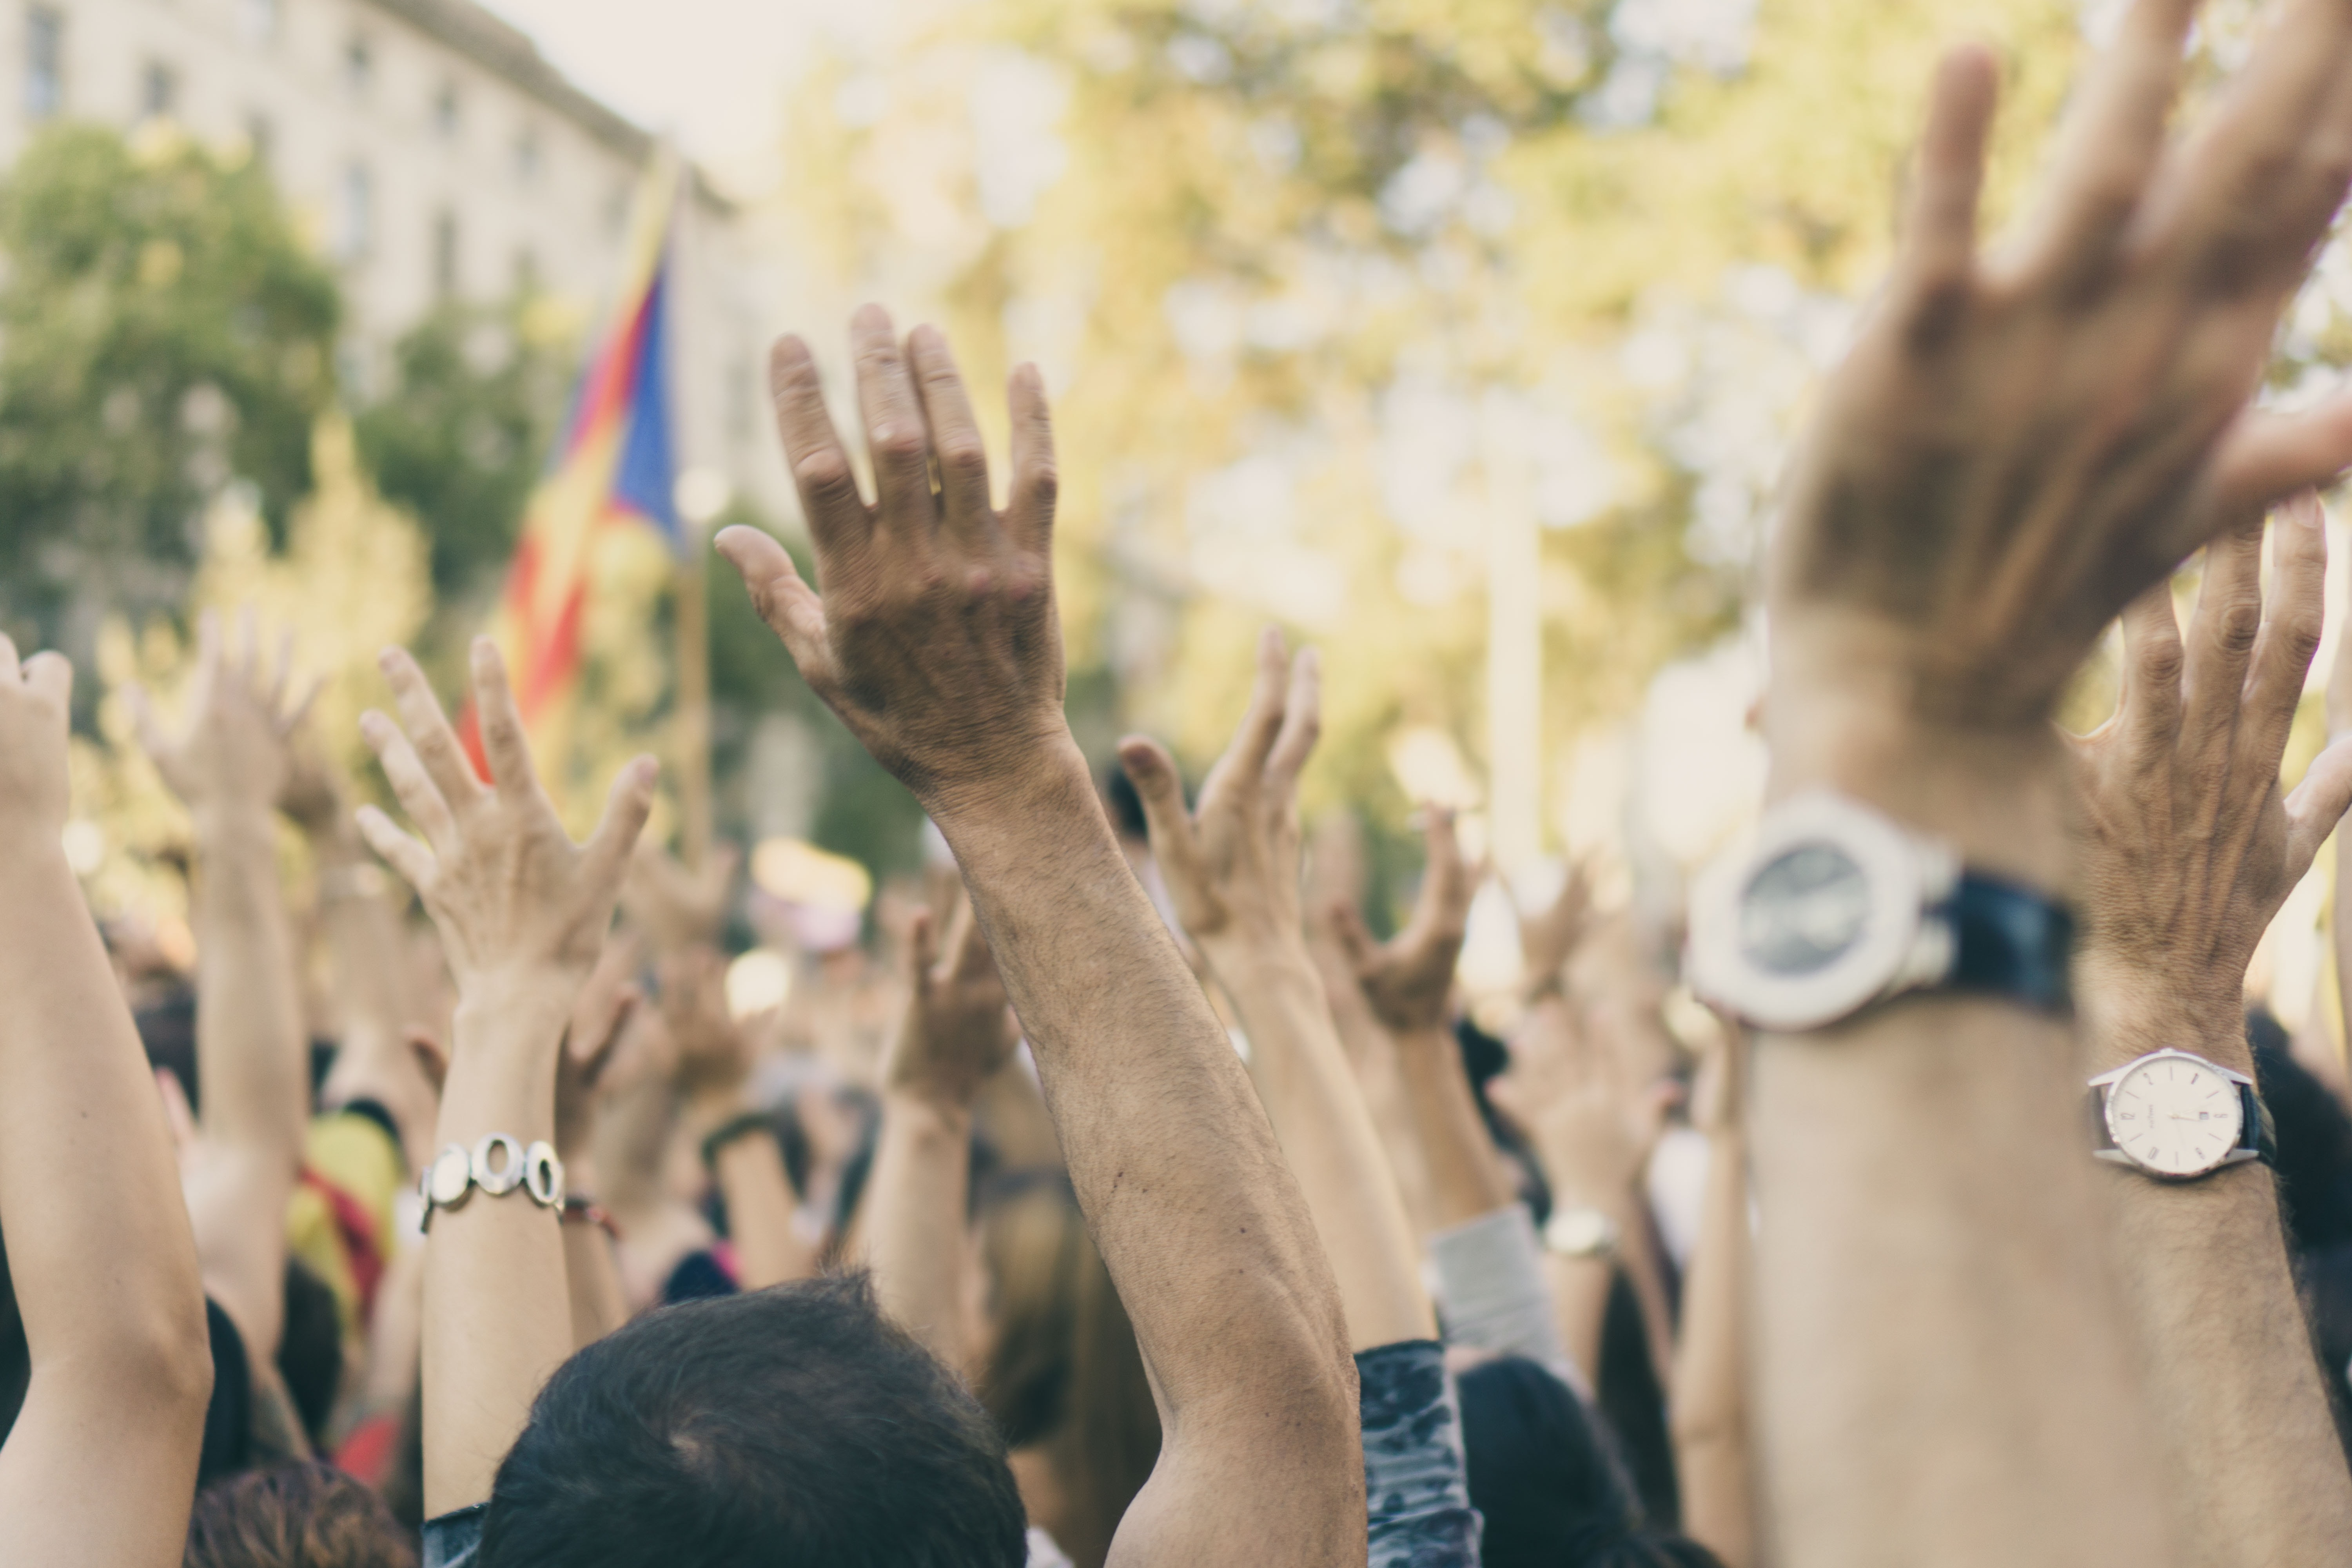 crowd of hands at a march or protest